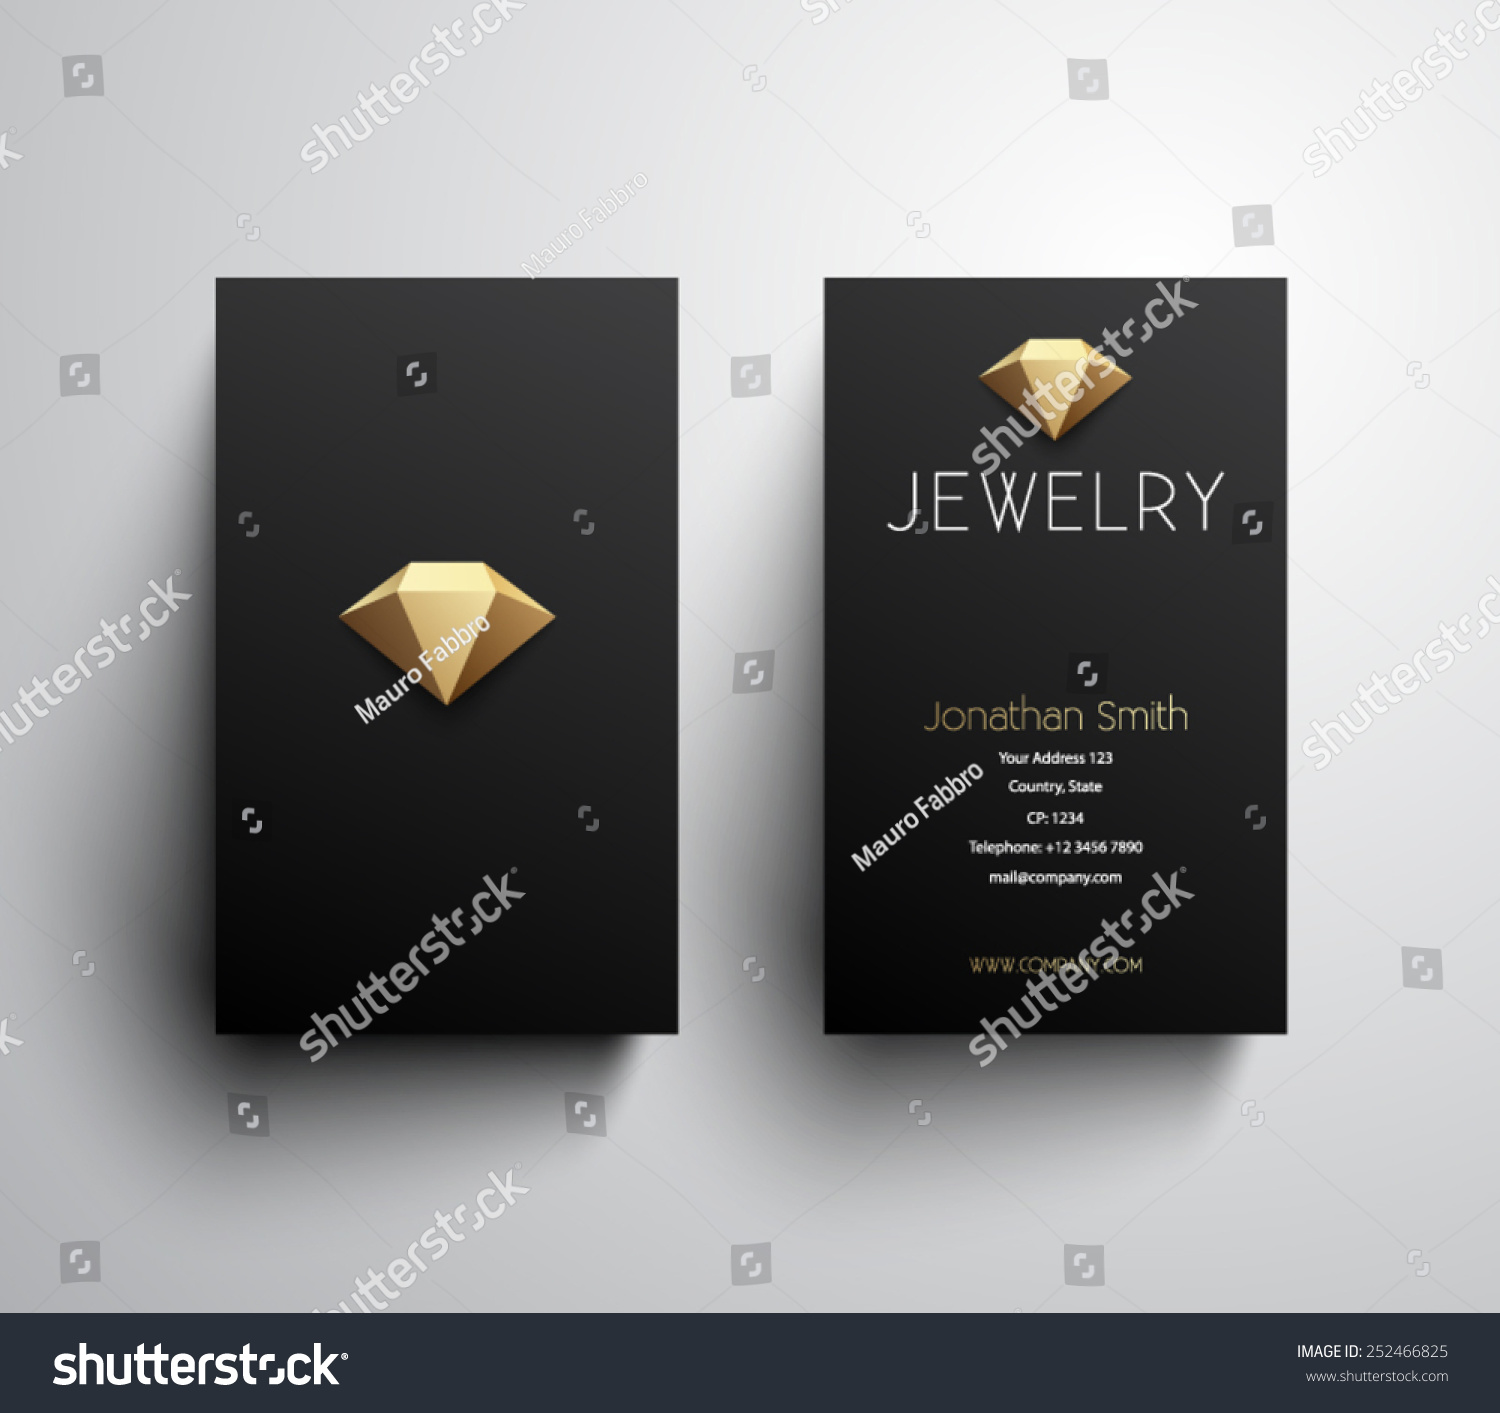 Royalty-free Abstract jewelry business card template… #252466825 ...